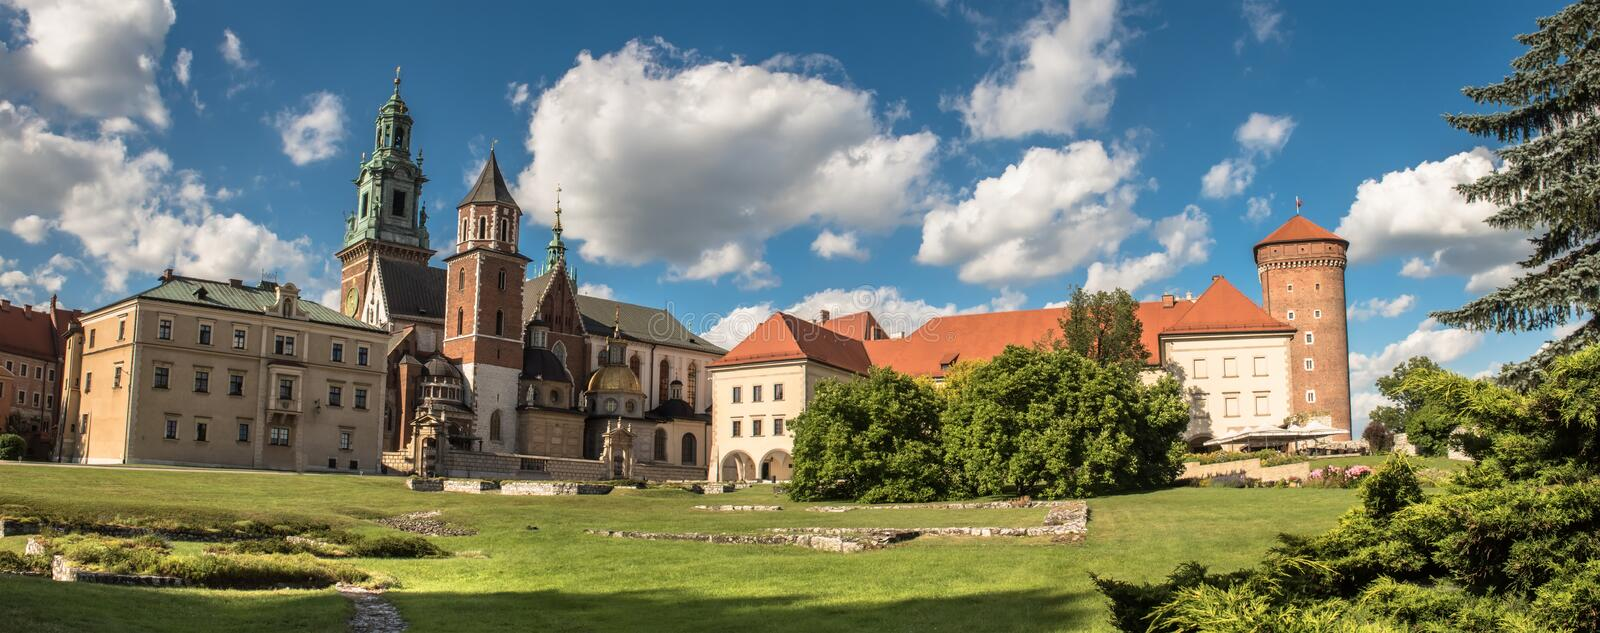 Download Panorama Of Wawel Cathedral In Krakow, Poland Stock Image - Image of dome, exterior: 78142765